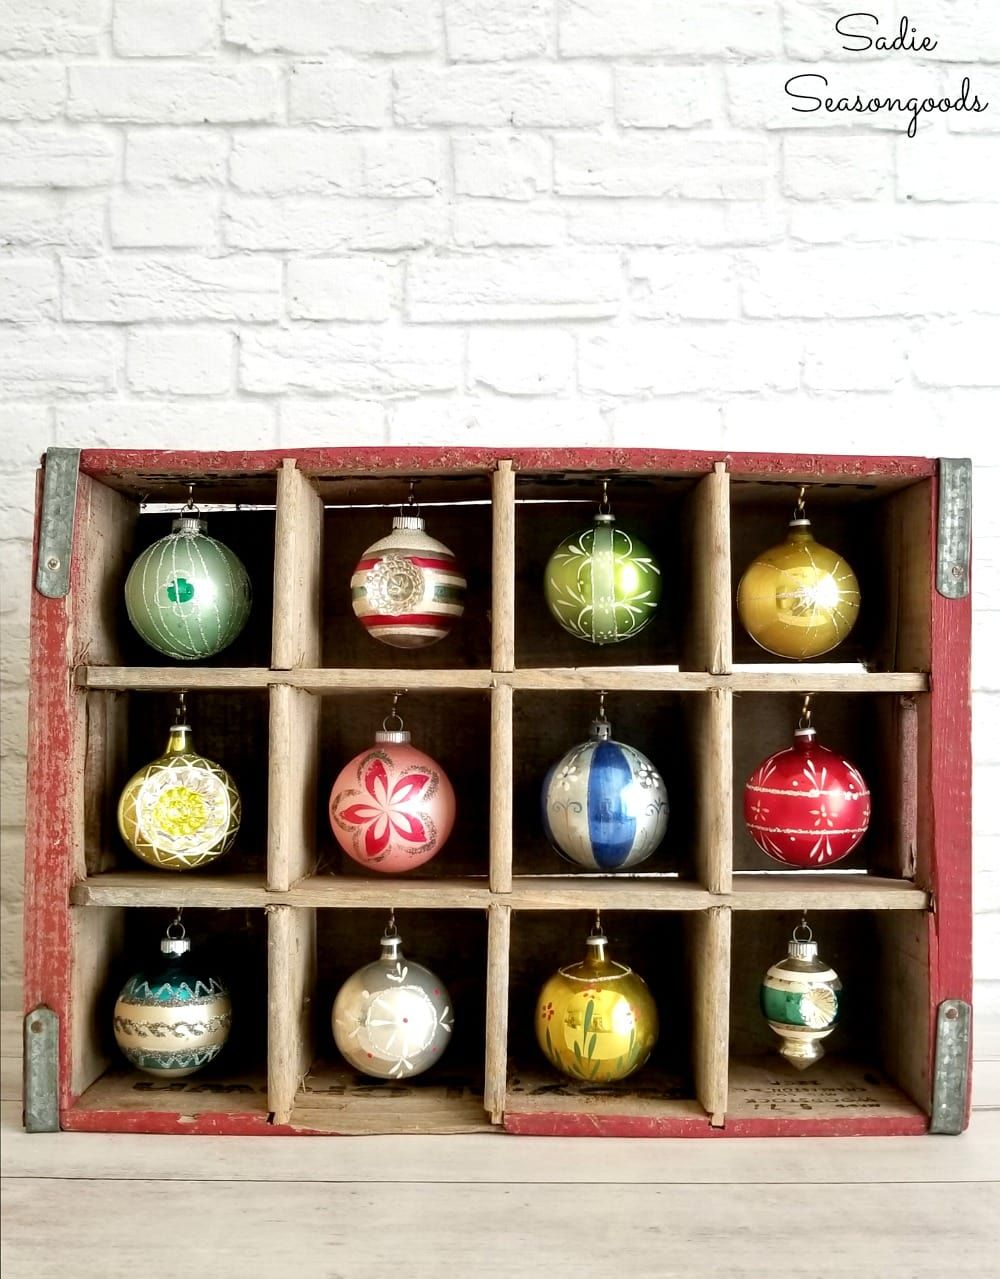 Wooden Bottle Crate As A Wooden Ornament Stand For Christmas Decor Vintage Christmas Ornaments Ornament Display Vintage Christmas Decorations Farmhouse